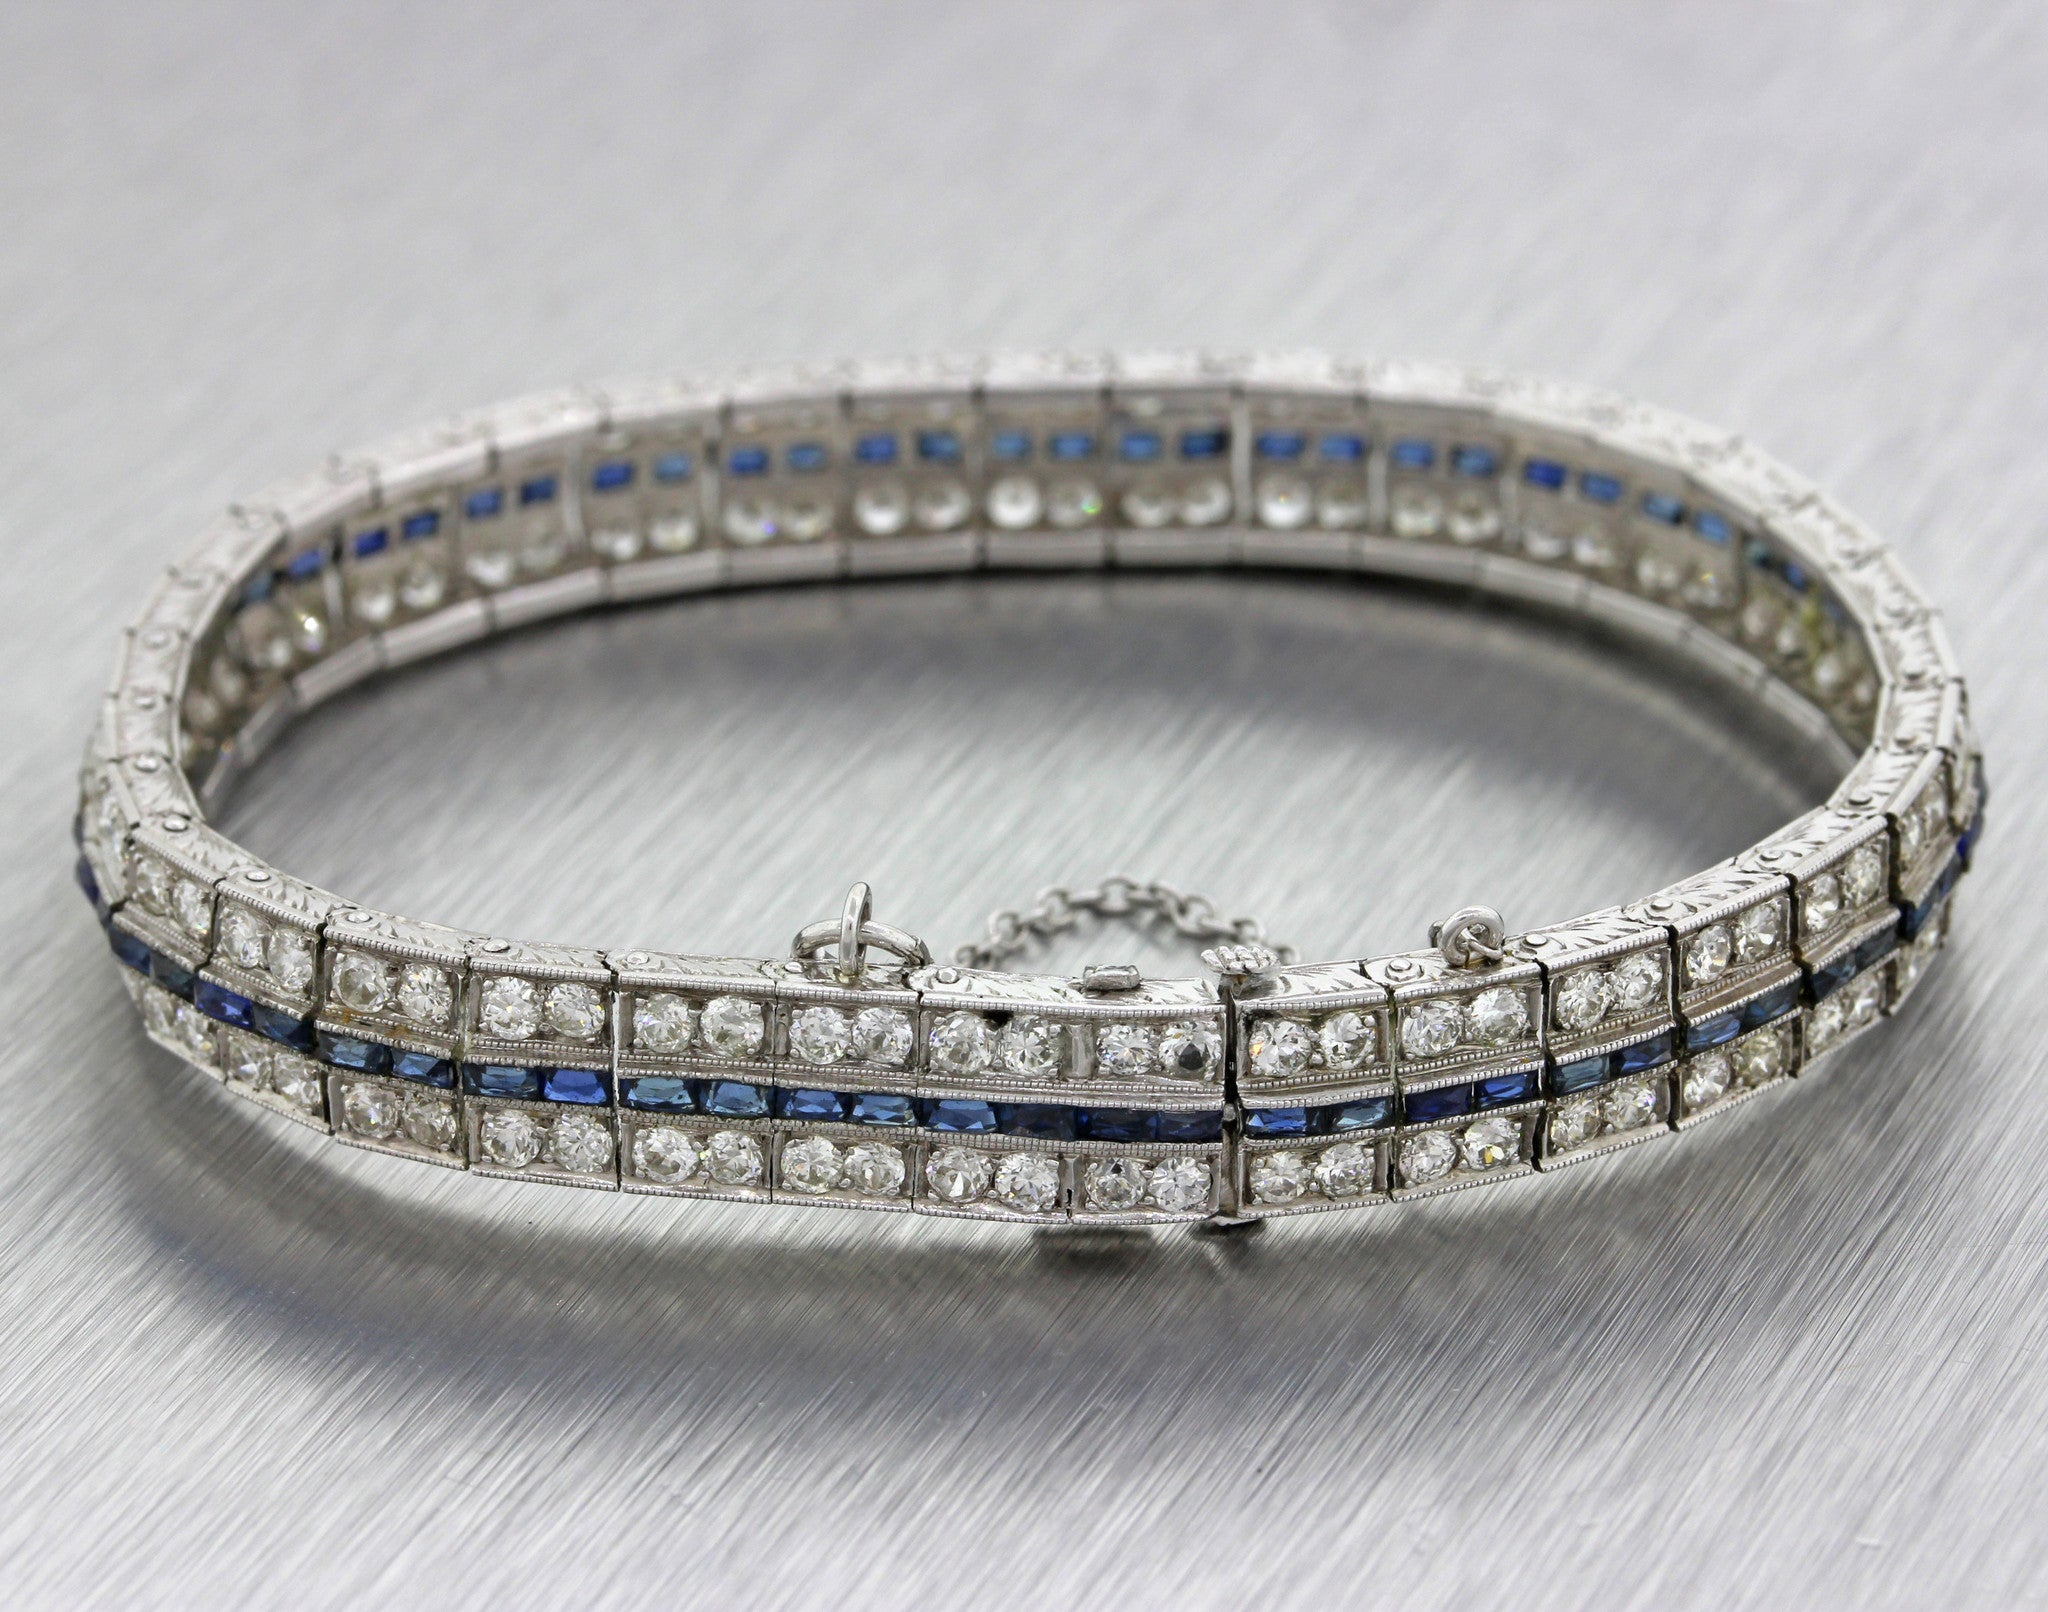 1930s Antique Art Deco Solid Platinum 5.76ctw Diamond Sapphire Tennis Bracelet